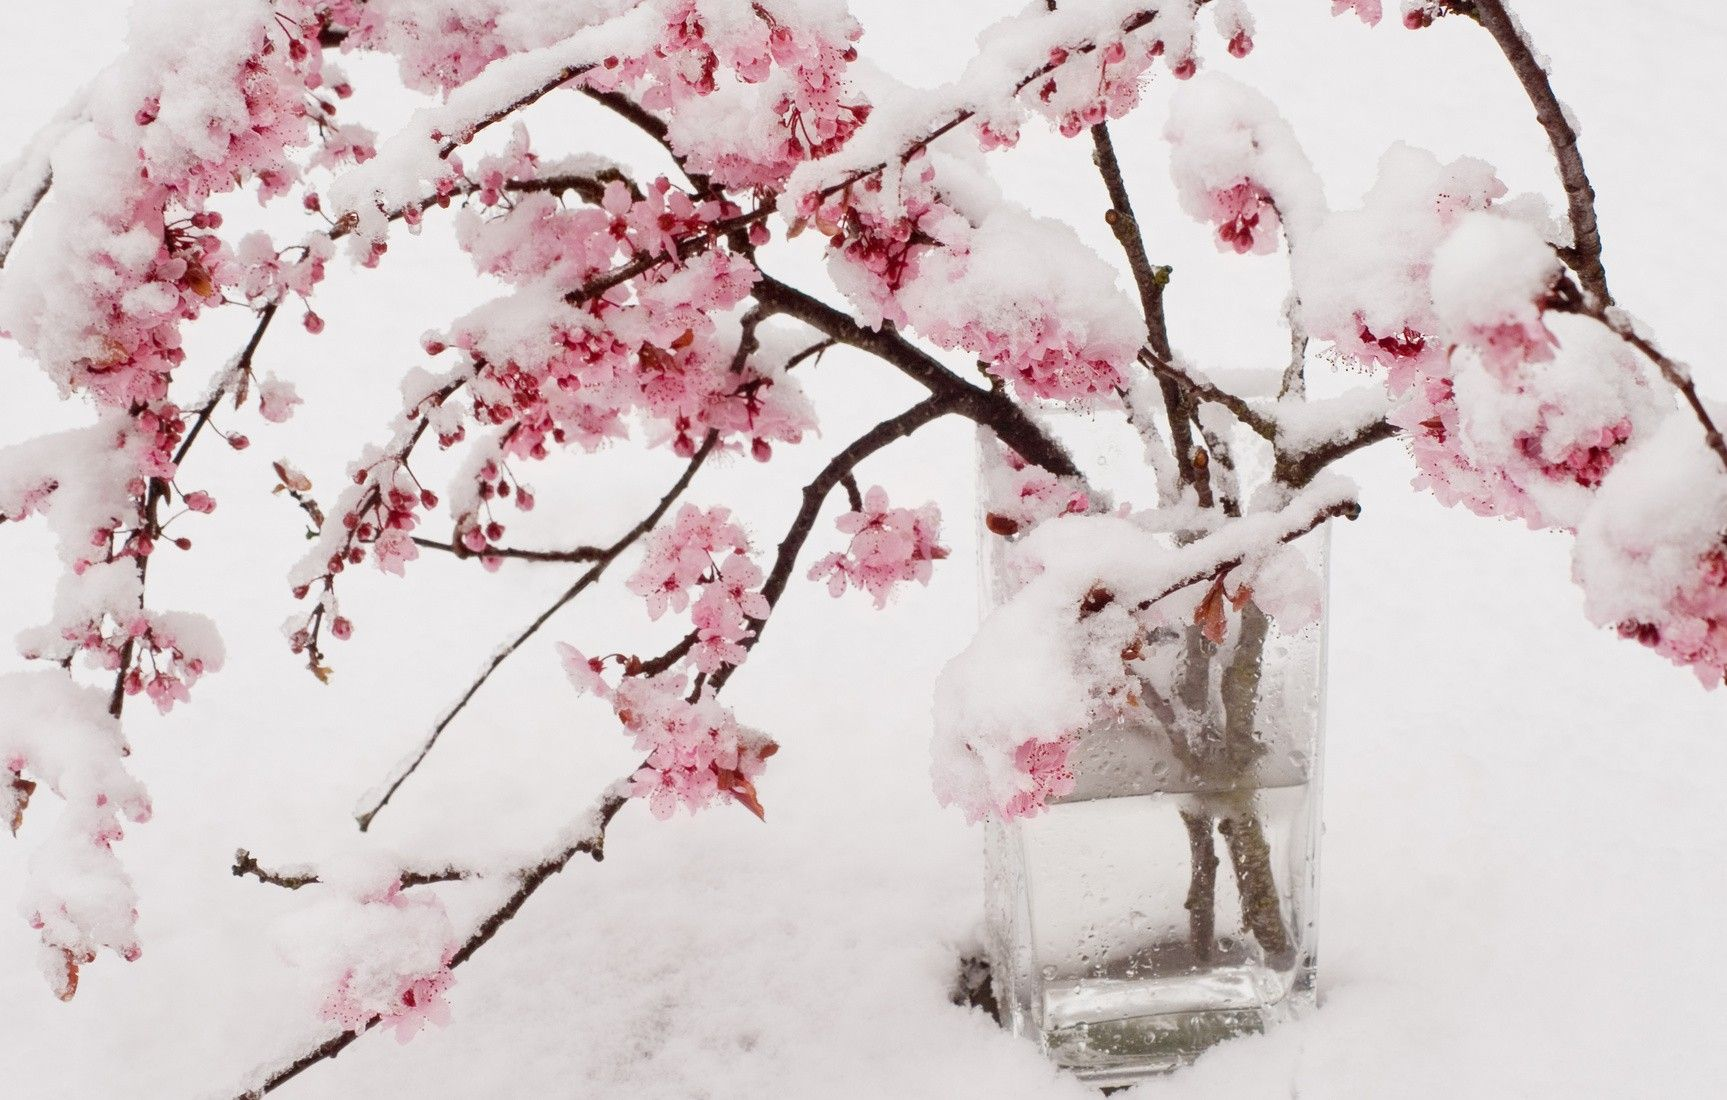 1727x1100 Flowers: Welcome Snow Cherry Blossoms Spring Flower Scenery ...